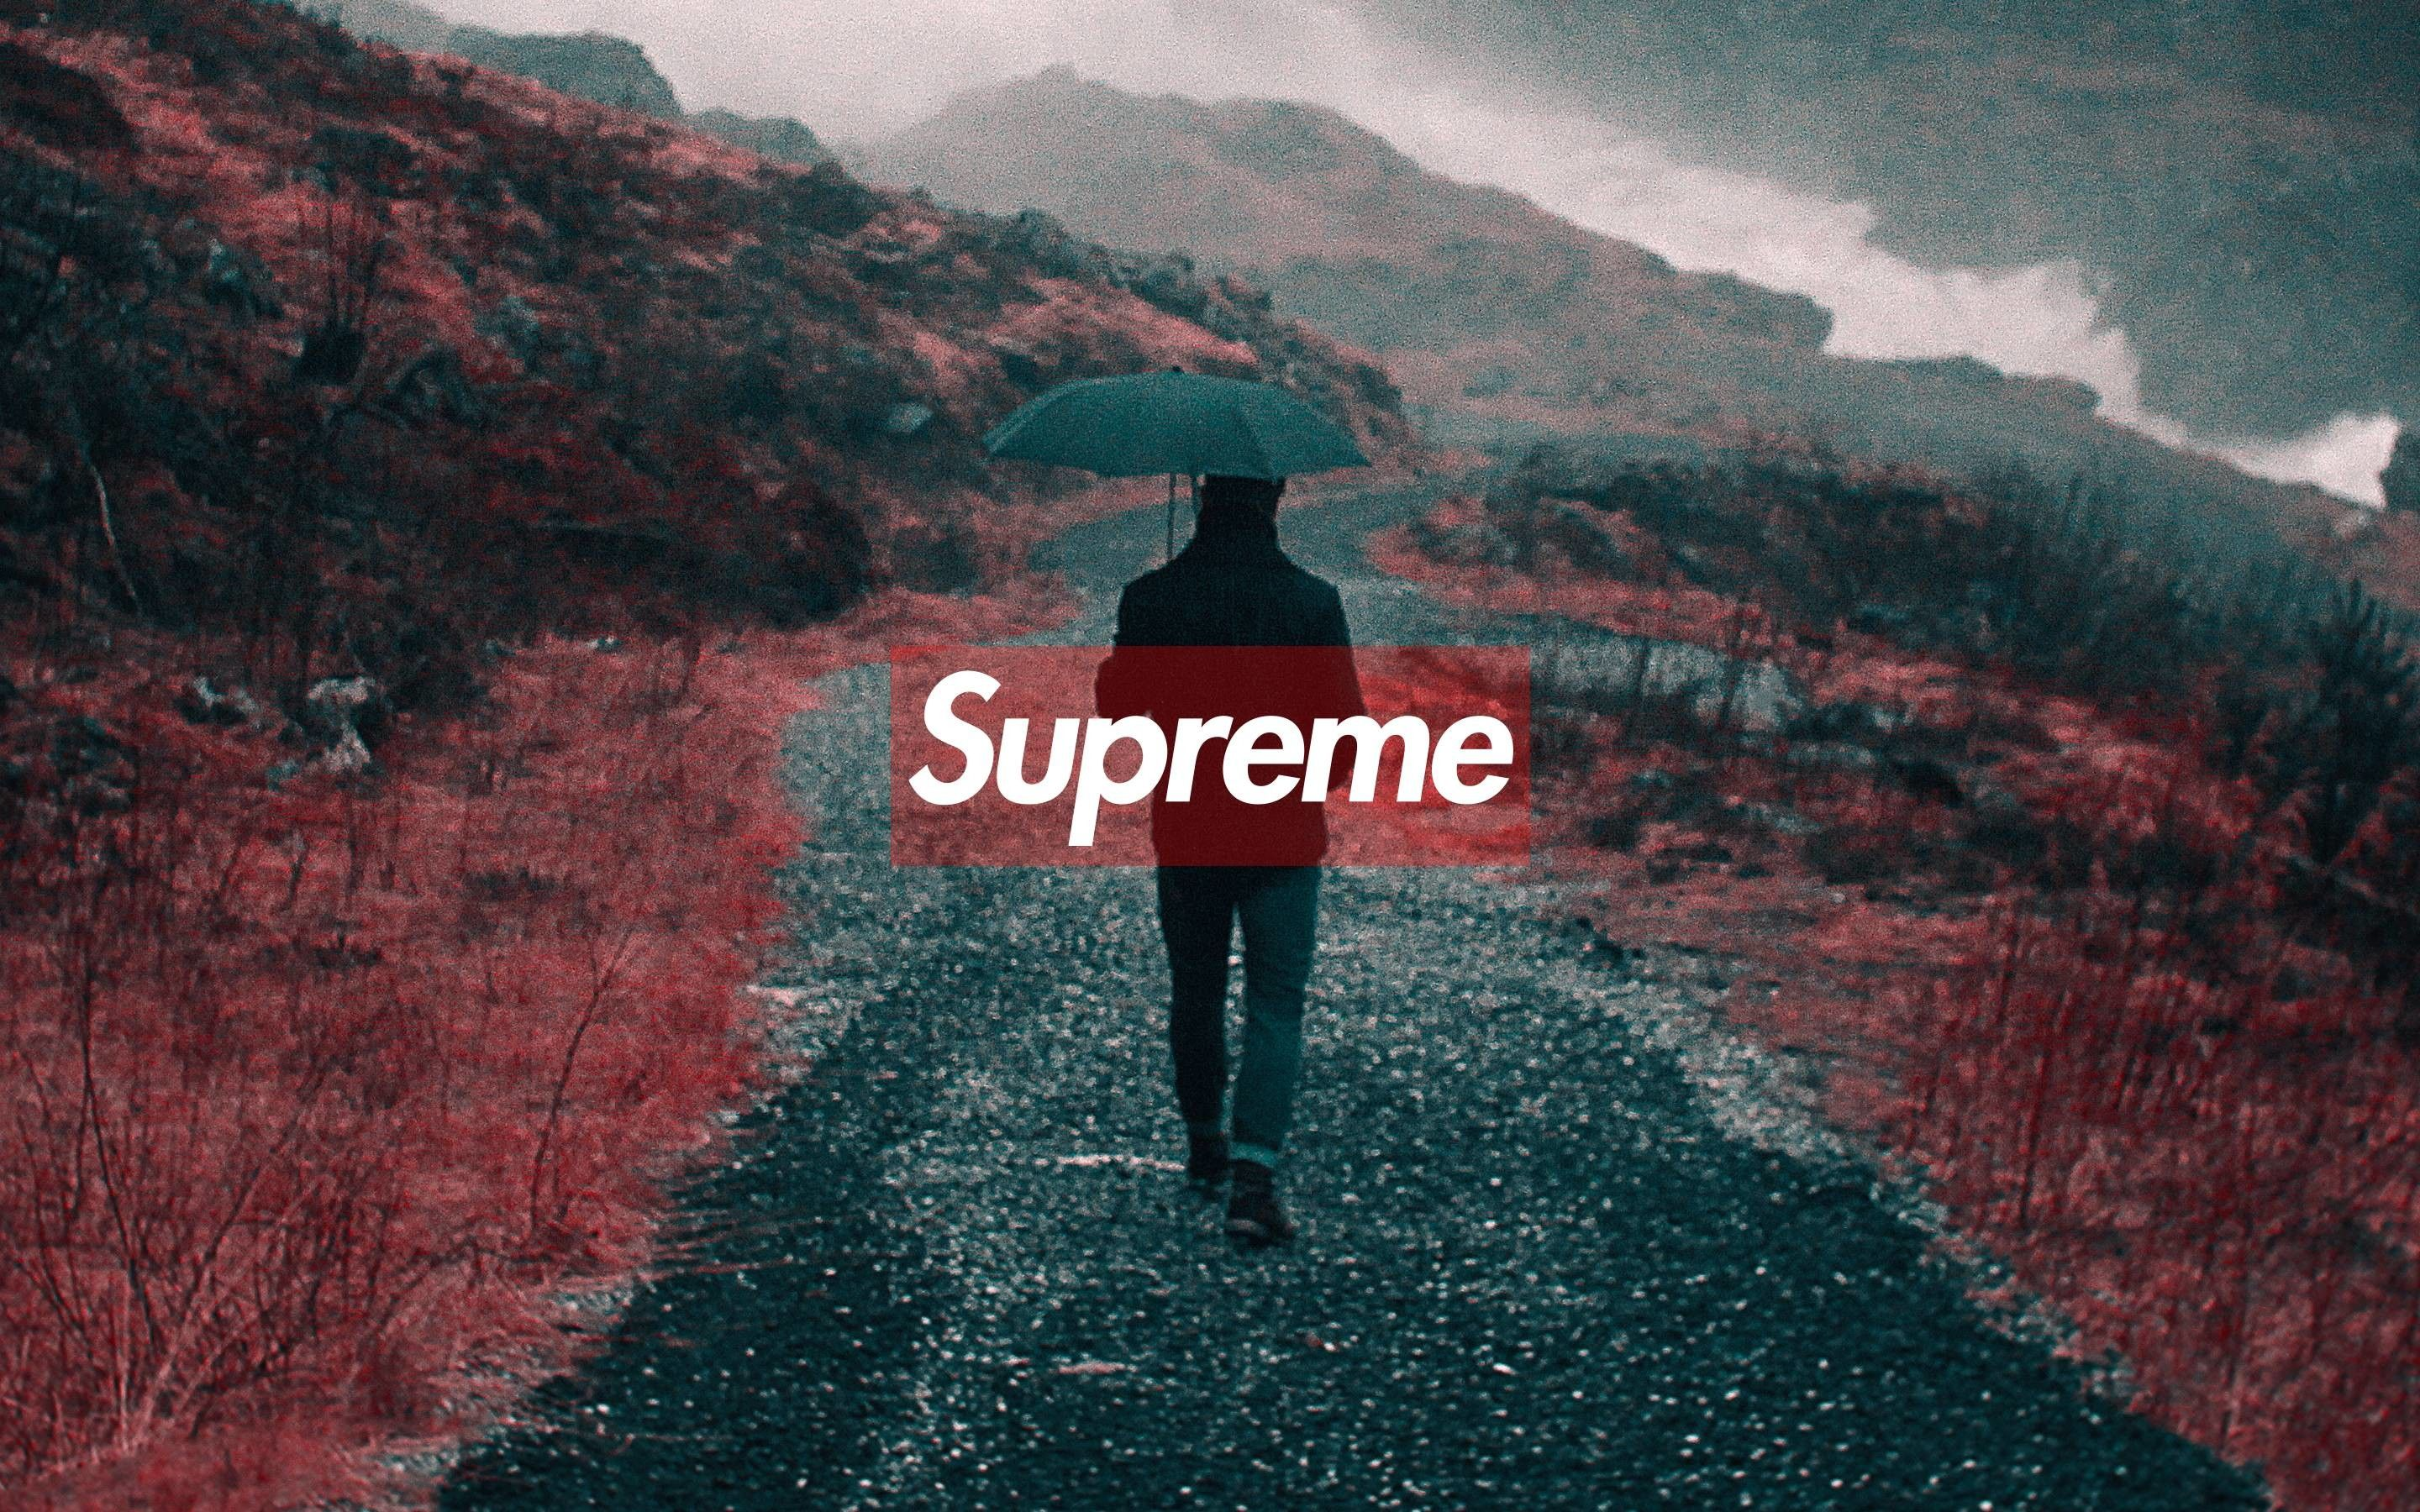 2880x1800 Supreme Wallpapers Album On Imgur Supreme Wallpaper Wallpaper Pc Cool Wallpaper